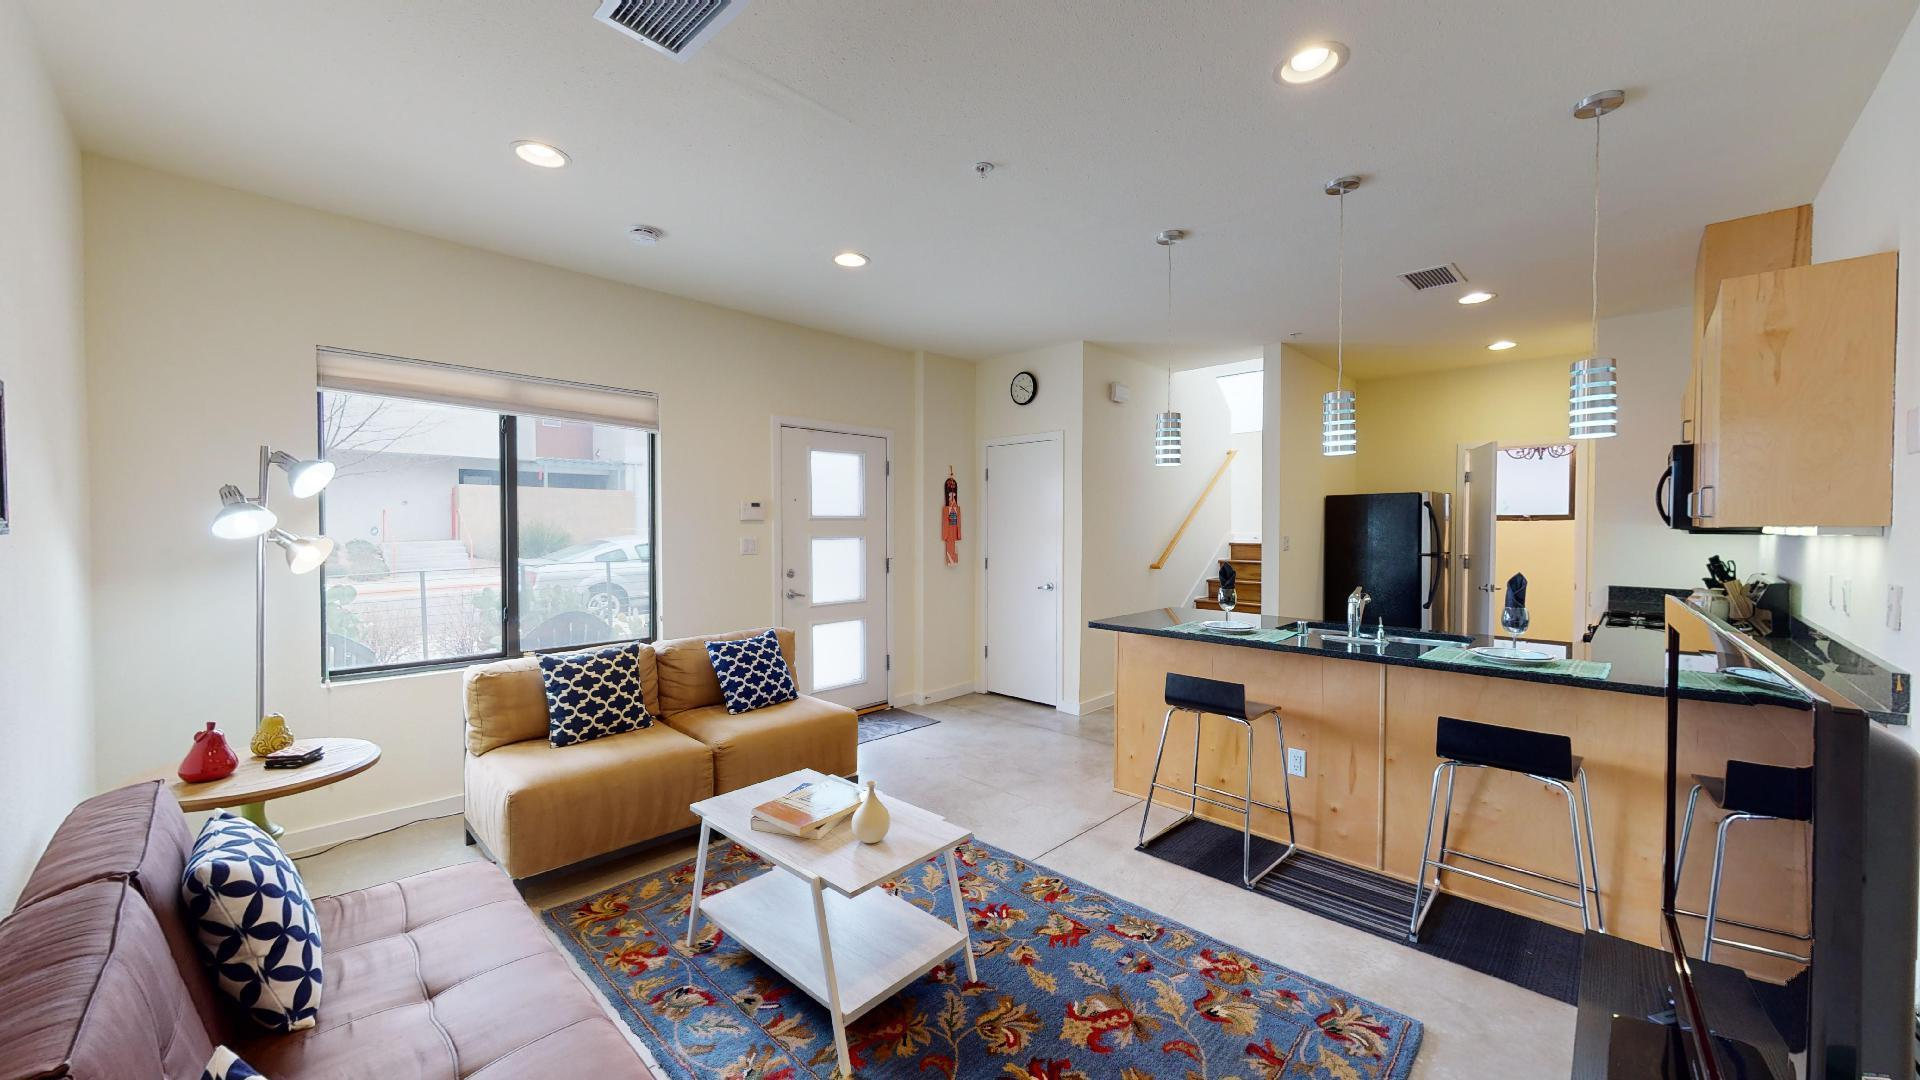 A TRUE WINNER for an easy breezy lifestyle.  Ensconced in light this Corner Unit has 2 great private outdoor patios (Margaritas Anyone???) and is just steps away from  restaurants, shops, ART (ride the mile to UNM)  & neighborhood park.  Indulge in private spacious master retreat with gorgeous hickory wood floors & from  balcony enjoy viewing the Nob Hill Nightlife or Sunsets against  the Sandias. The loft with expansive windows offers great flexibility for office, studio or guest room. Great room with sealed concrete floors effortlessly blends into kitchen with modern fixtures, maple cabinets & granite counters.Leave yard work behind and indulge in Nob Hill Living at its finest! Newer HVAC unit. HOA covers exterior maintenance incl roof, water, trash, common area maintenance & insurance.